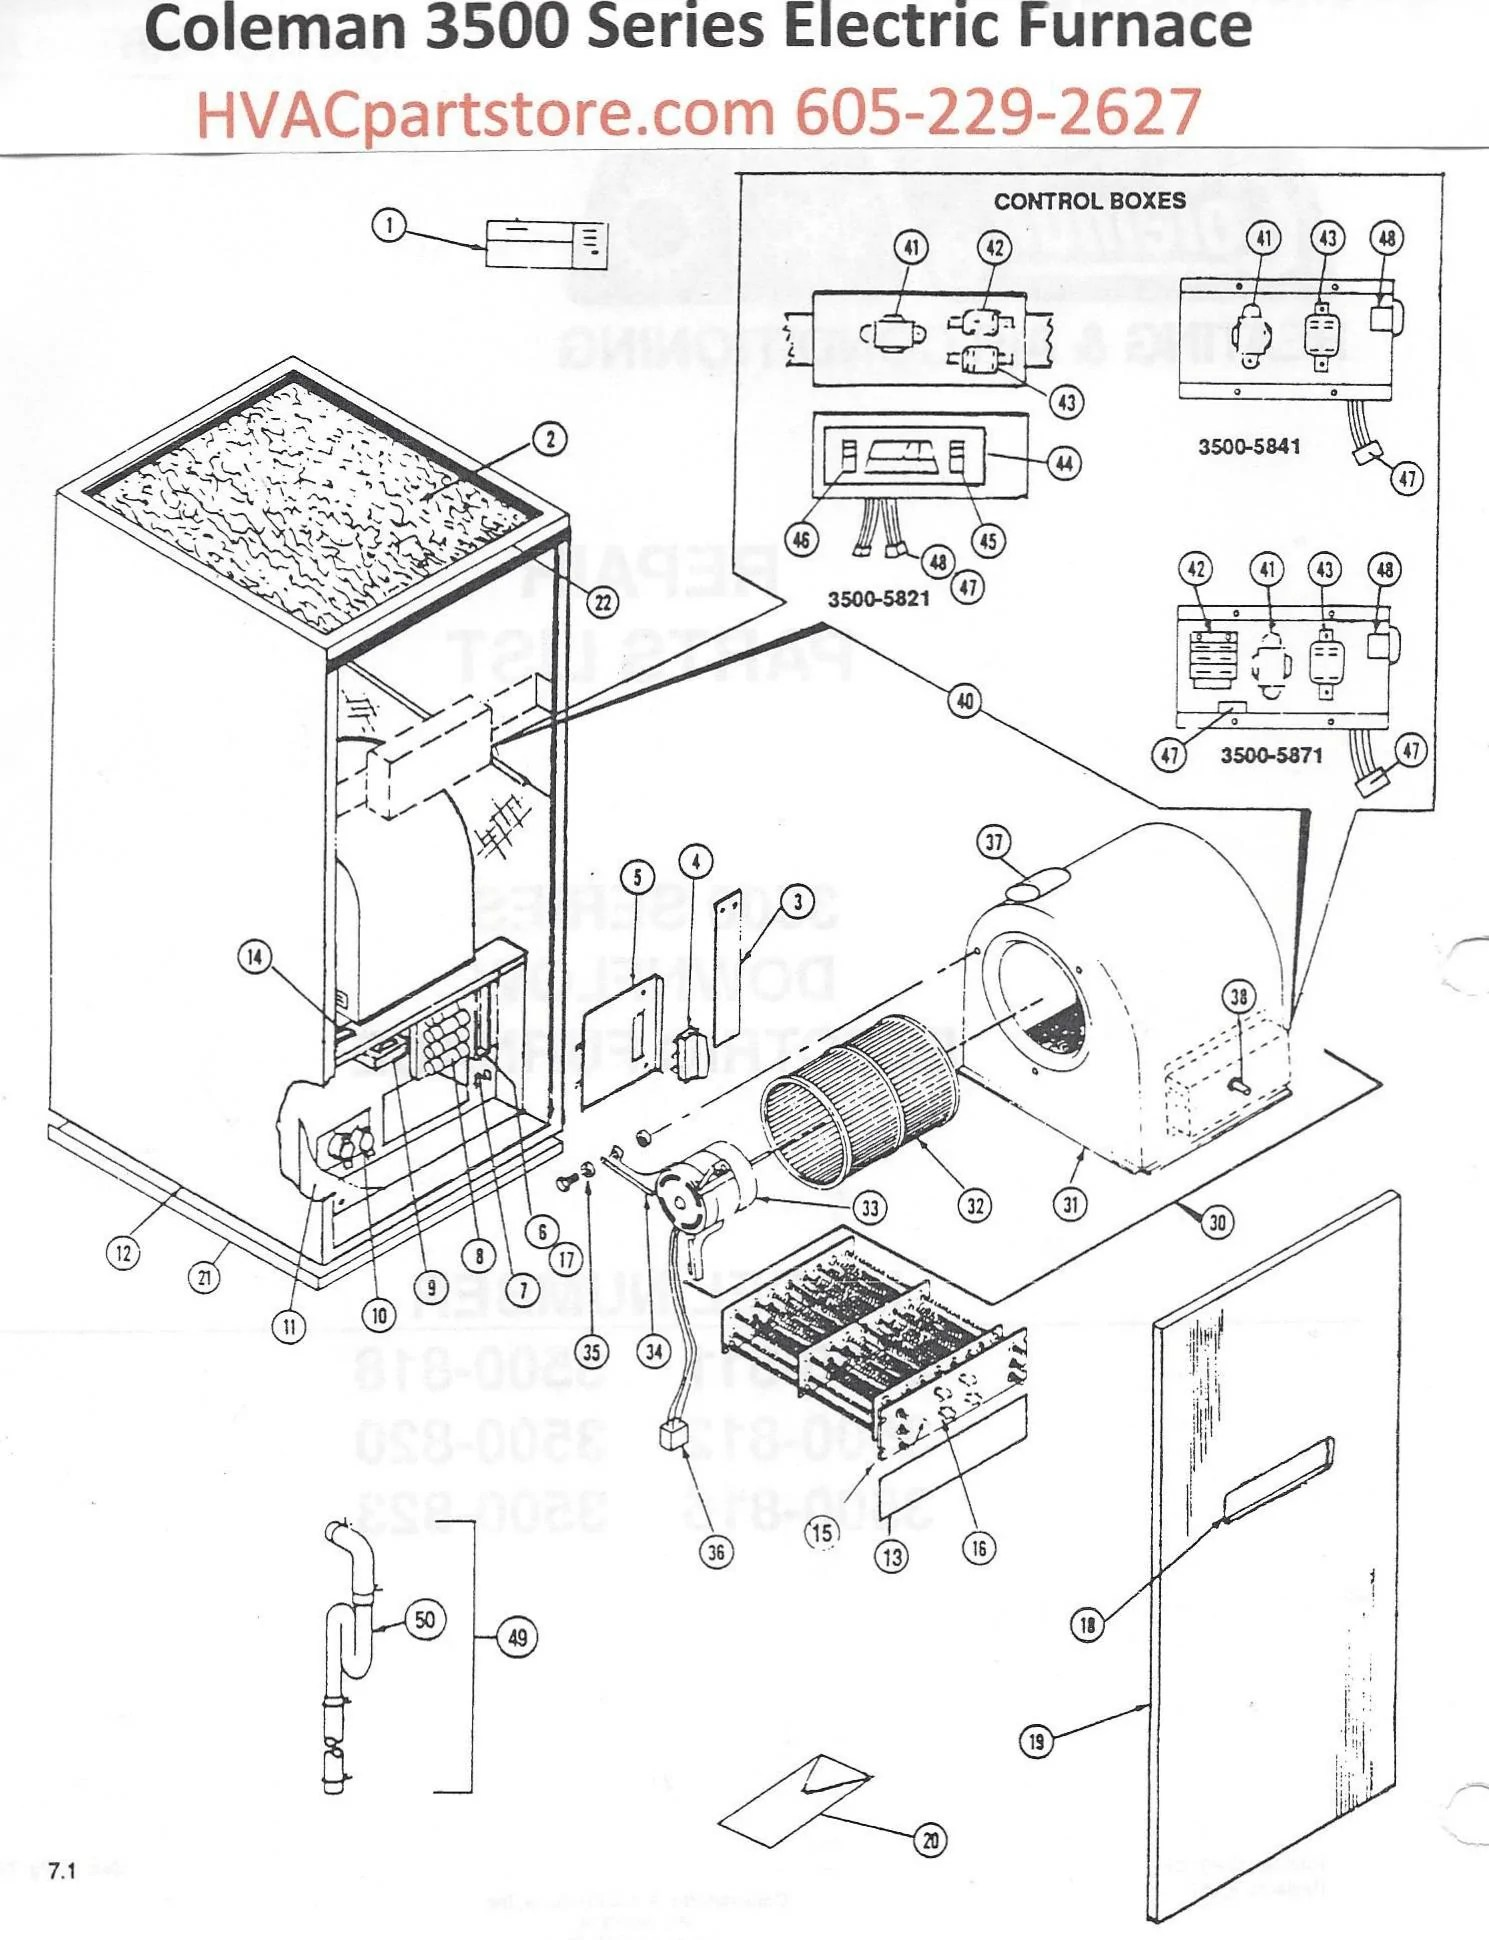 small resolution of 3500 811 coleman electric furnace parts hvacpartstore armstrong air handler wiring diagram electric heat pump wiring